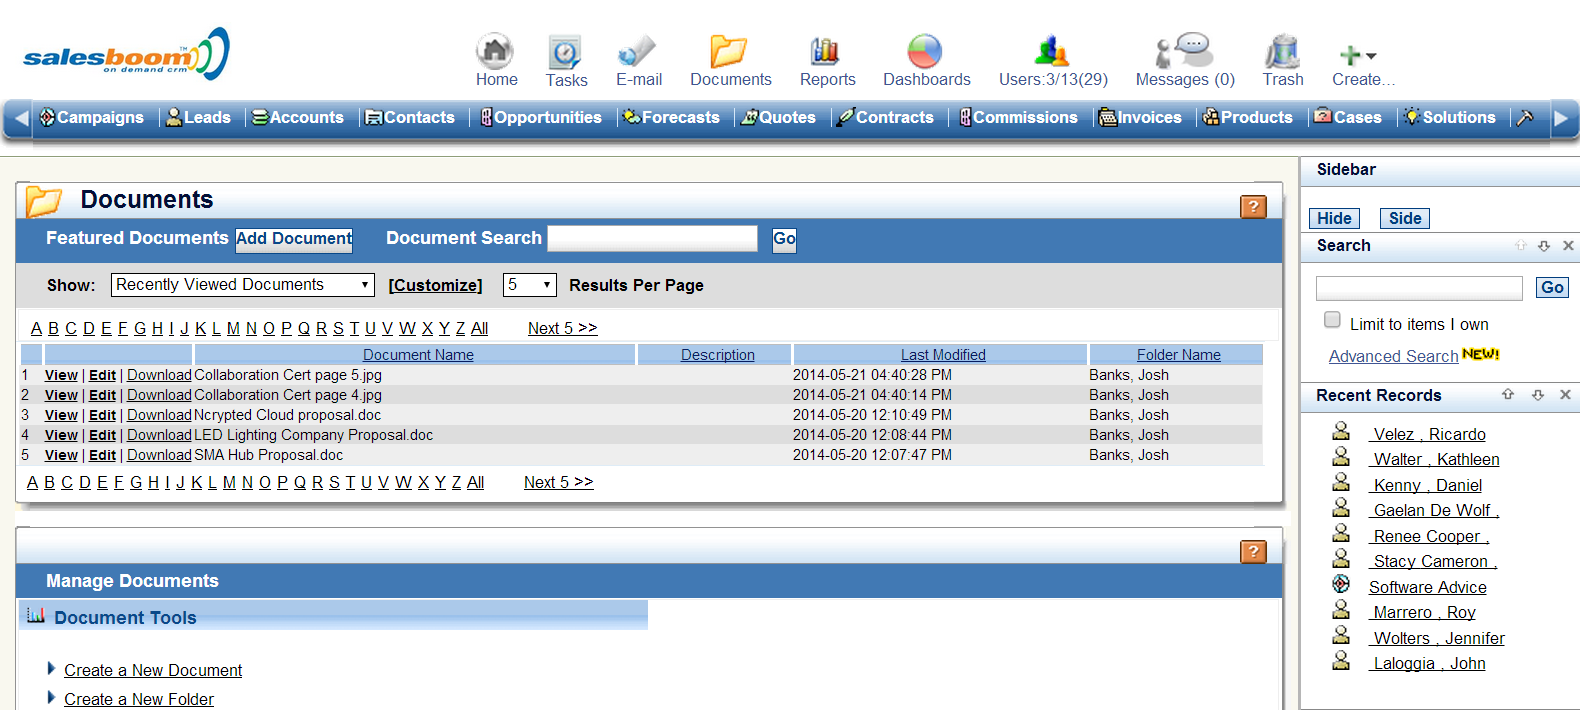 CRM Document Management Software ScreenshotS